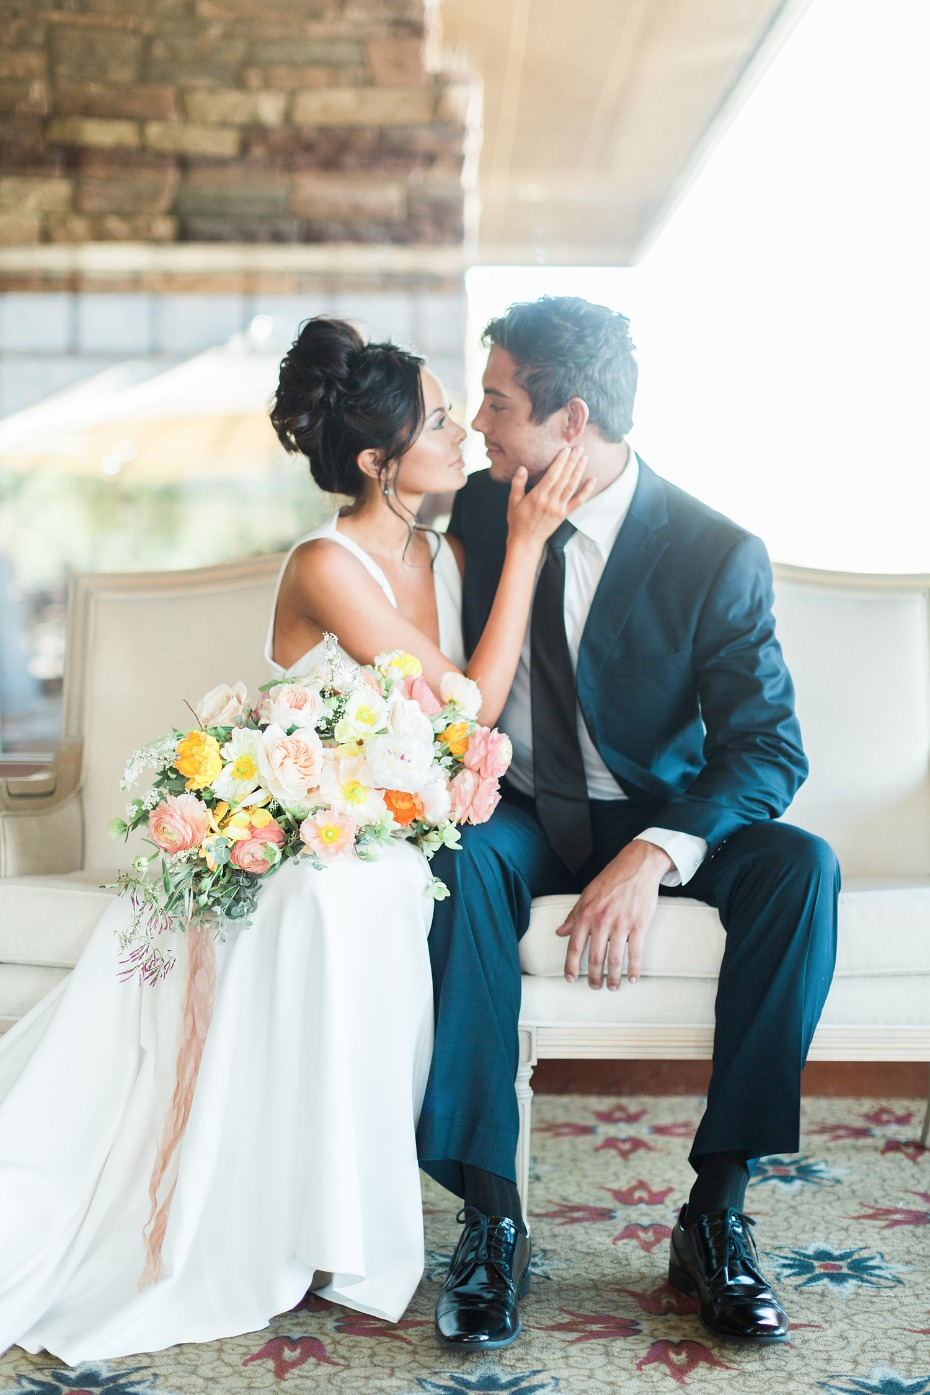 Gorgeous wedding inspiration for you